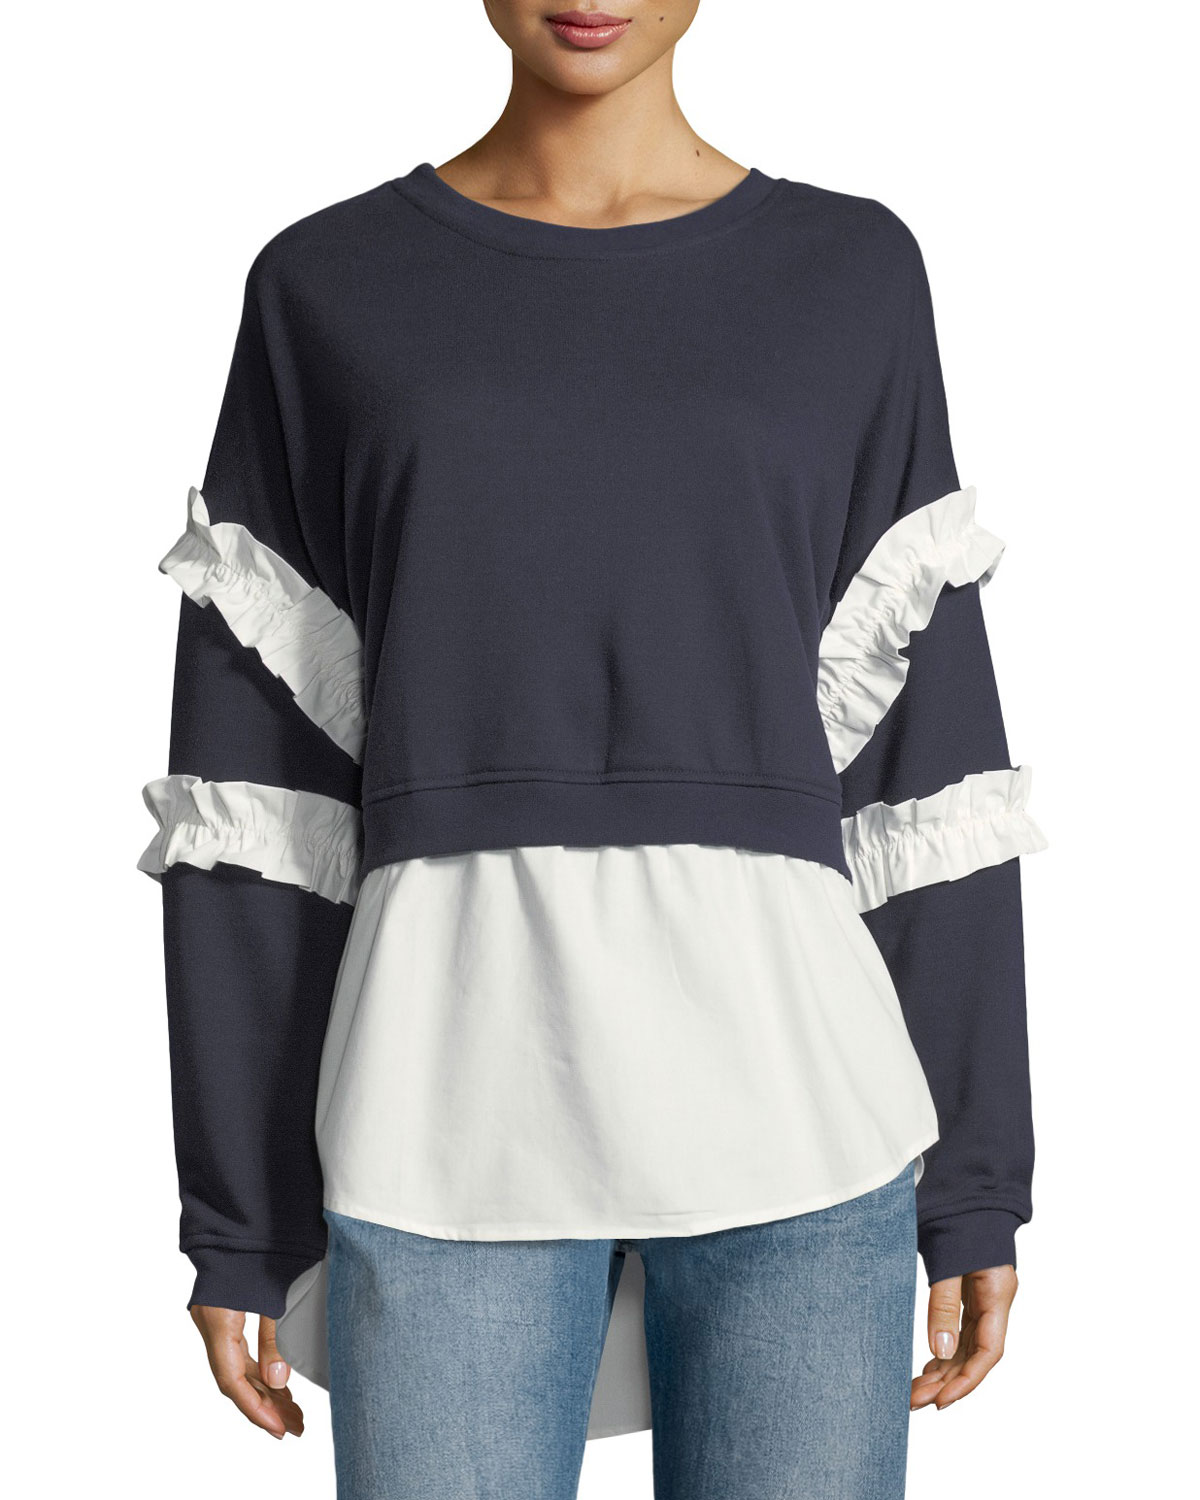 Ruffle-Trim Twofer Sweatshirt